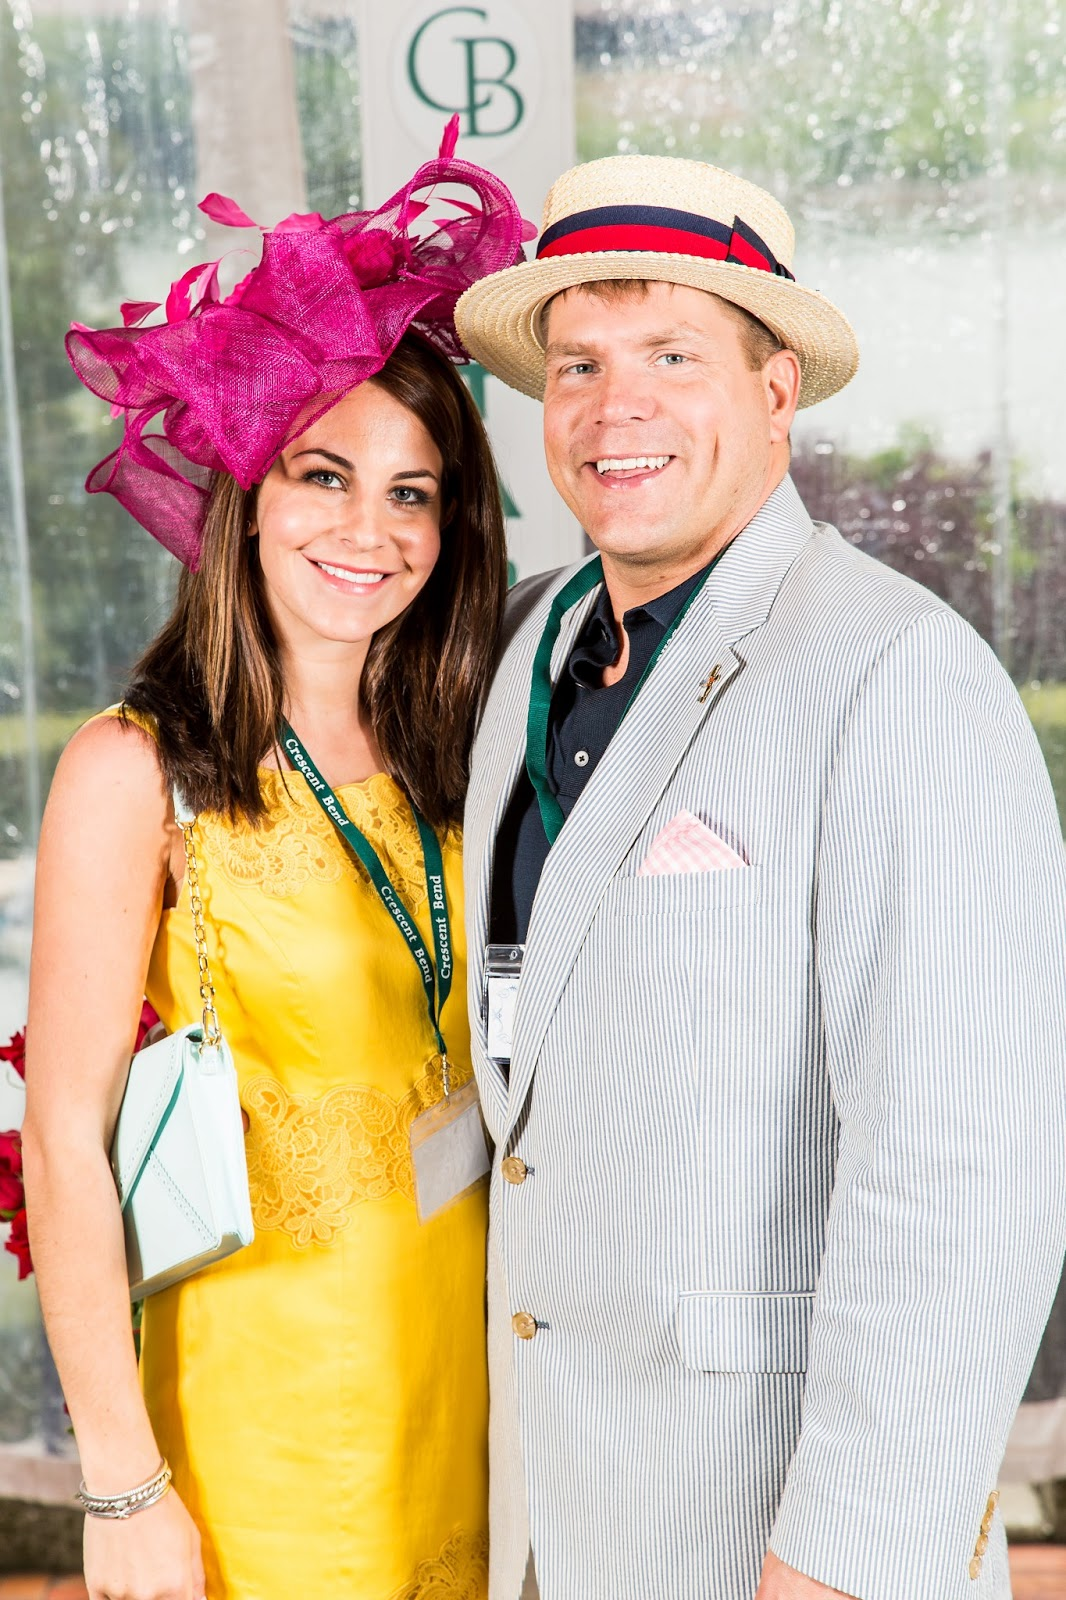 Kentucky Derby, Derby Day, Crescent Bend, ALM Photo, photography, event photography, Knoxville, Tennessee, riverfront, horses, wedding venue, venue, entertainment, party, event, professional photography, Allan Mueller, Lisa Mueller, Lisa Gifford Mueller, Kentucky Derby hat, Derby hat